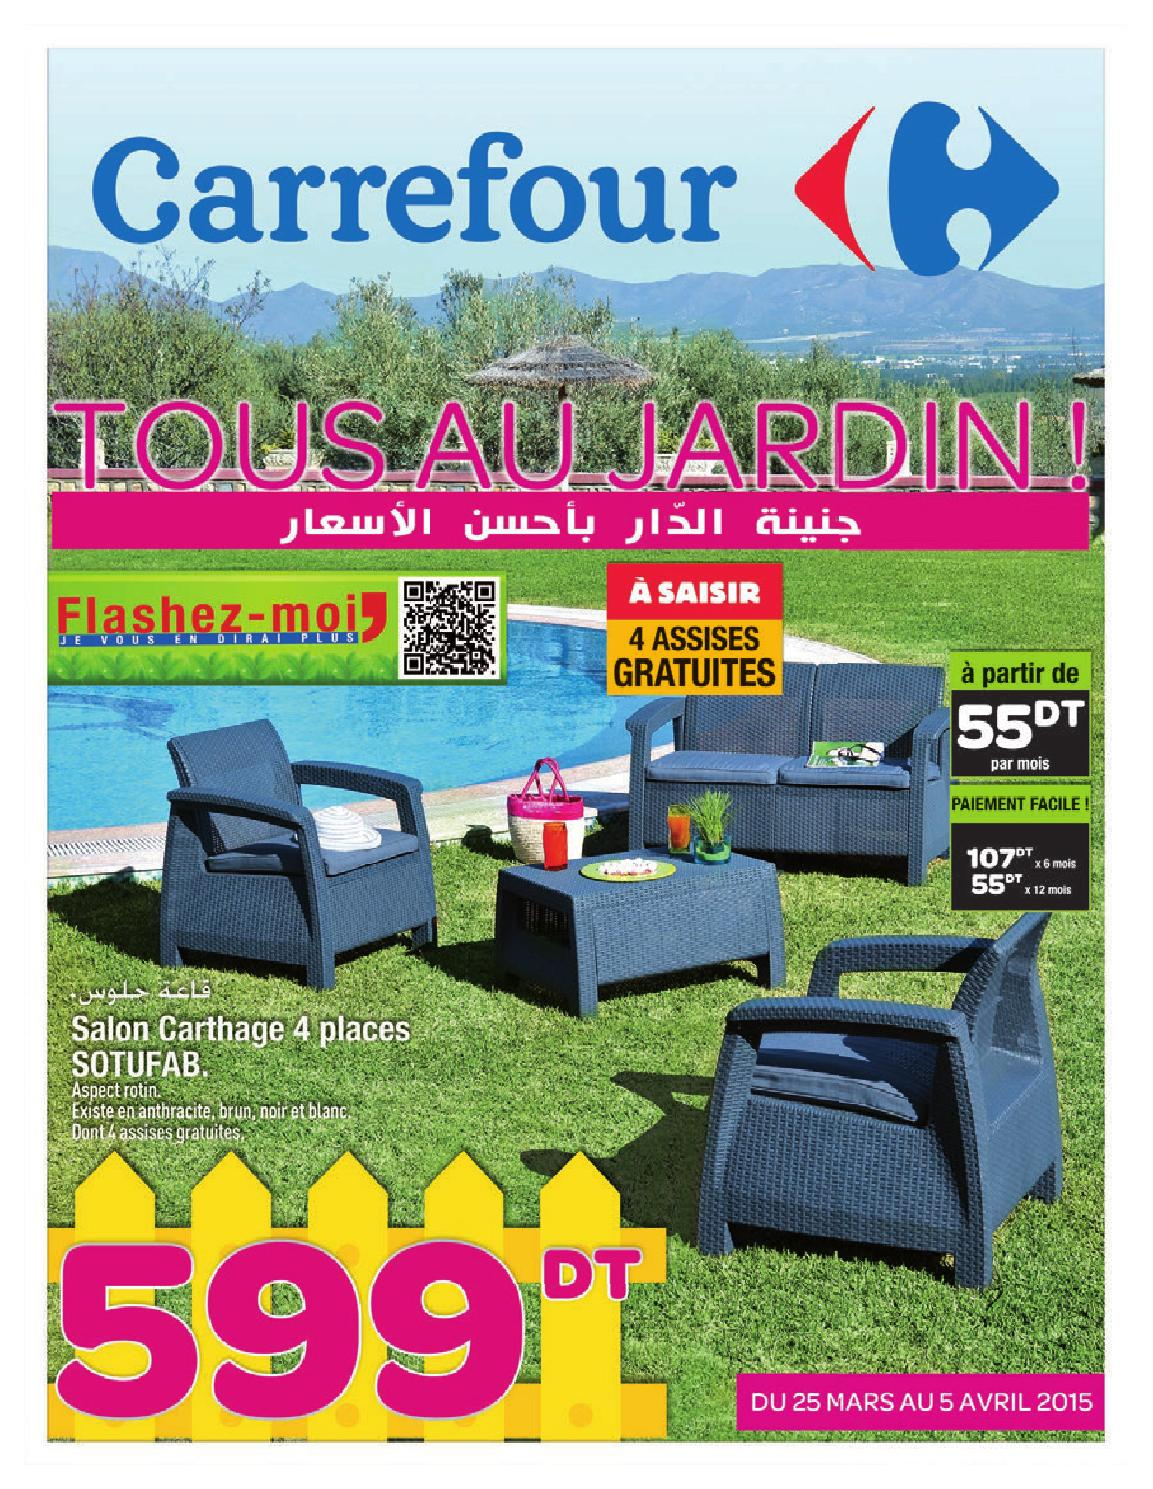 Catalogue carrefour tous au jardin by carrefour for Salon 9 places tunisie